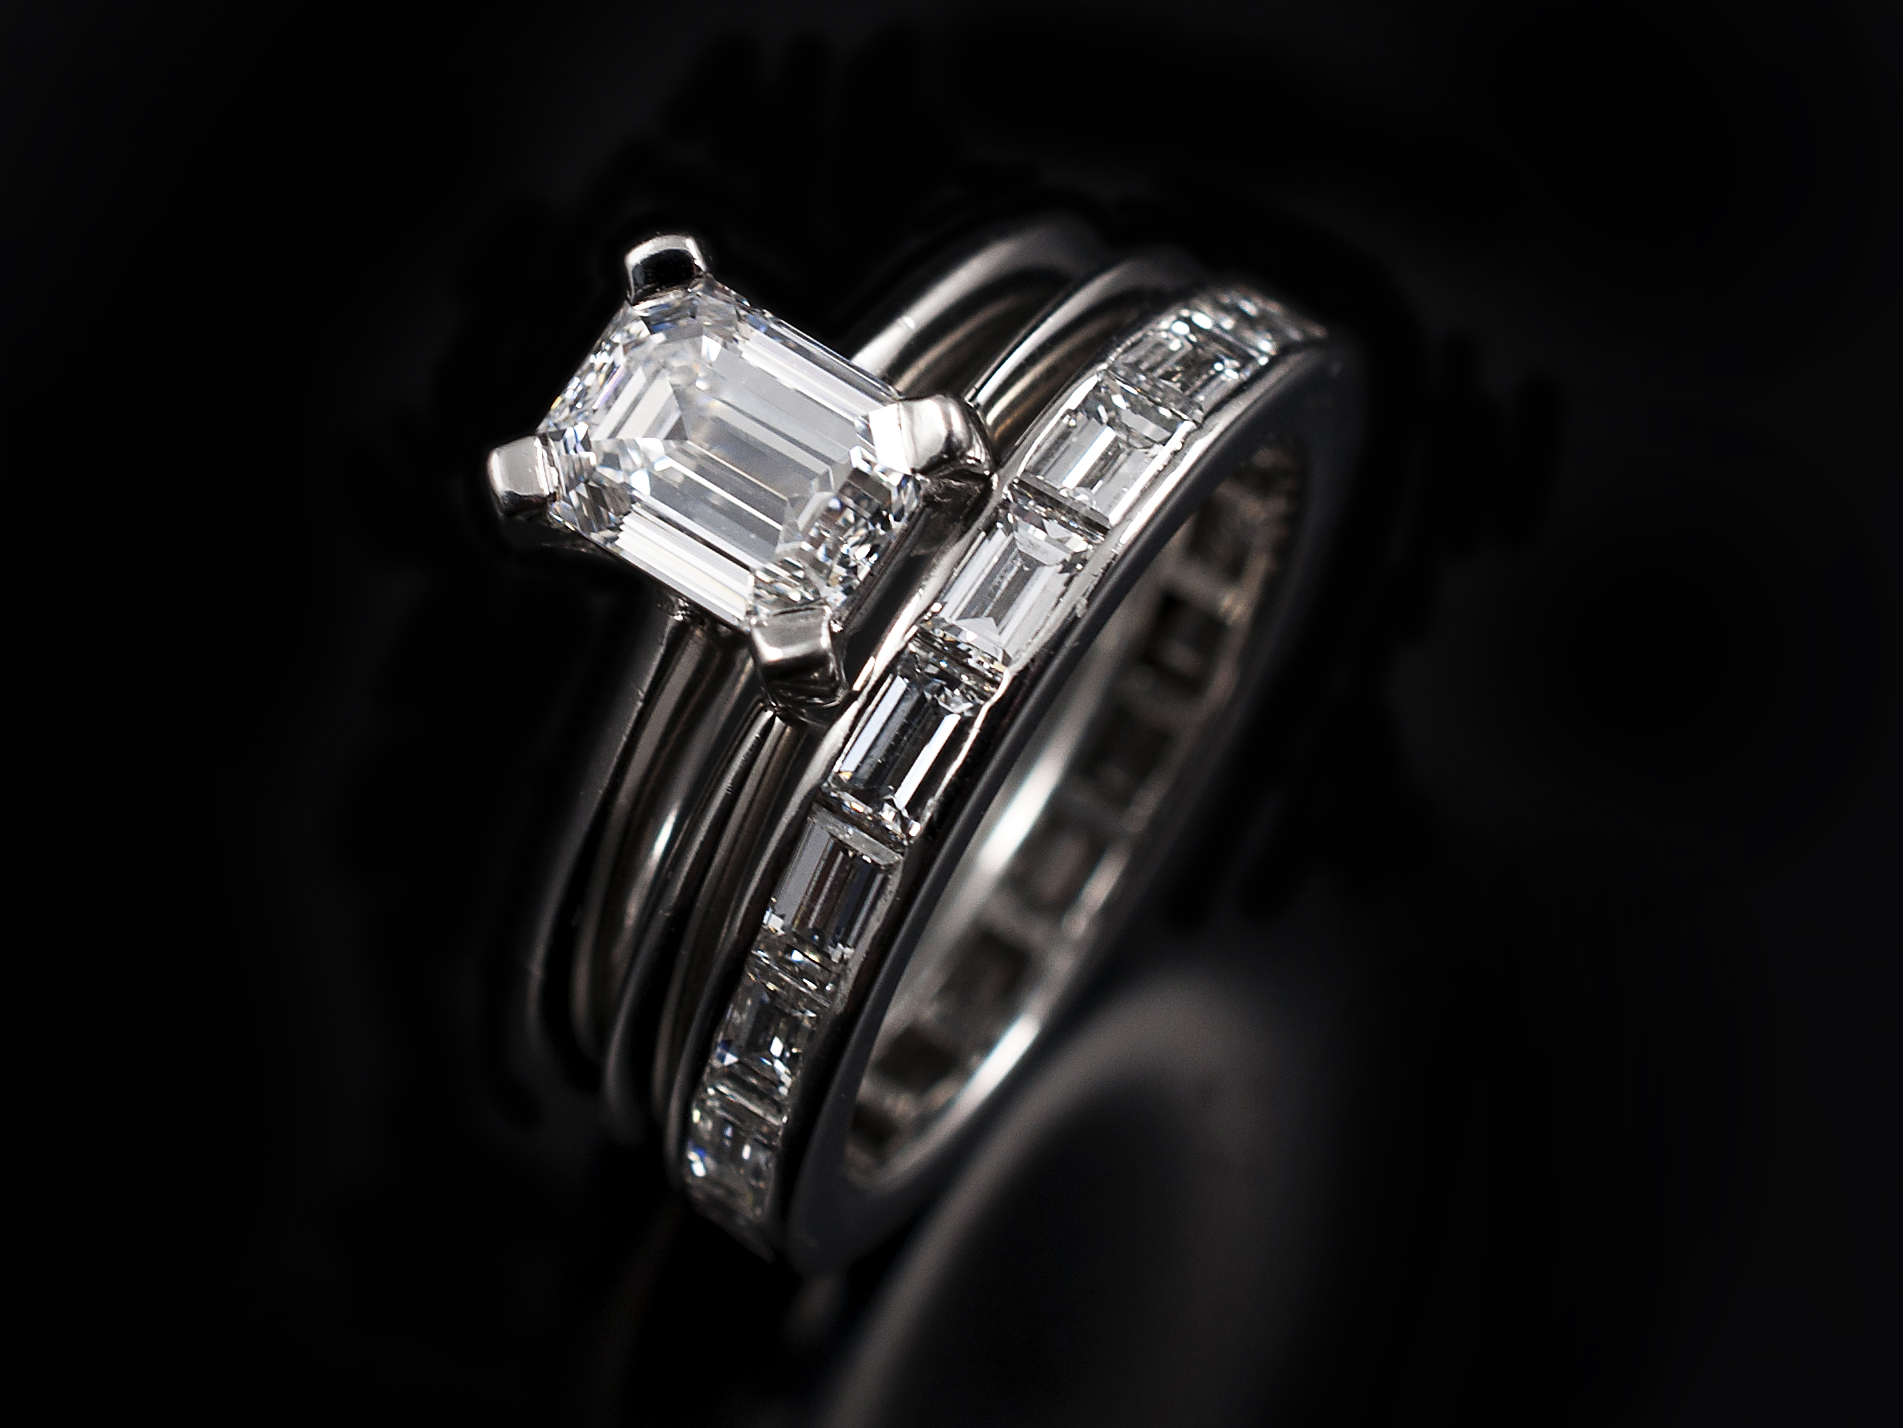 baguette co diamond jewelry j sale band wedding for ring rings and tiffany id sapphire z at bands platinum